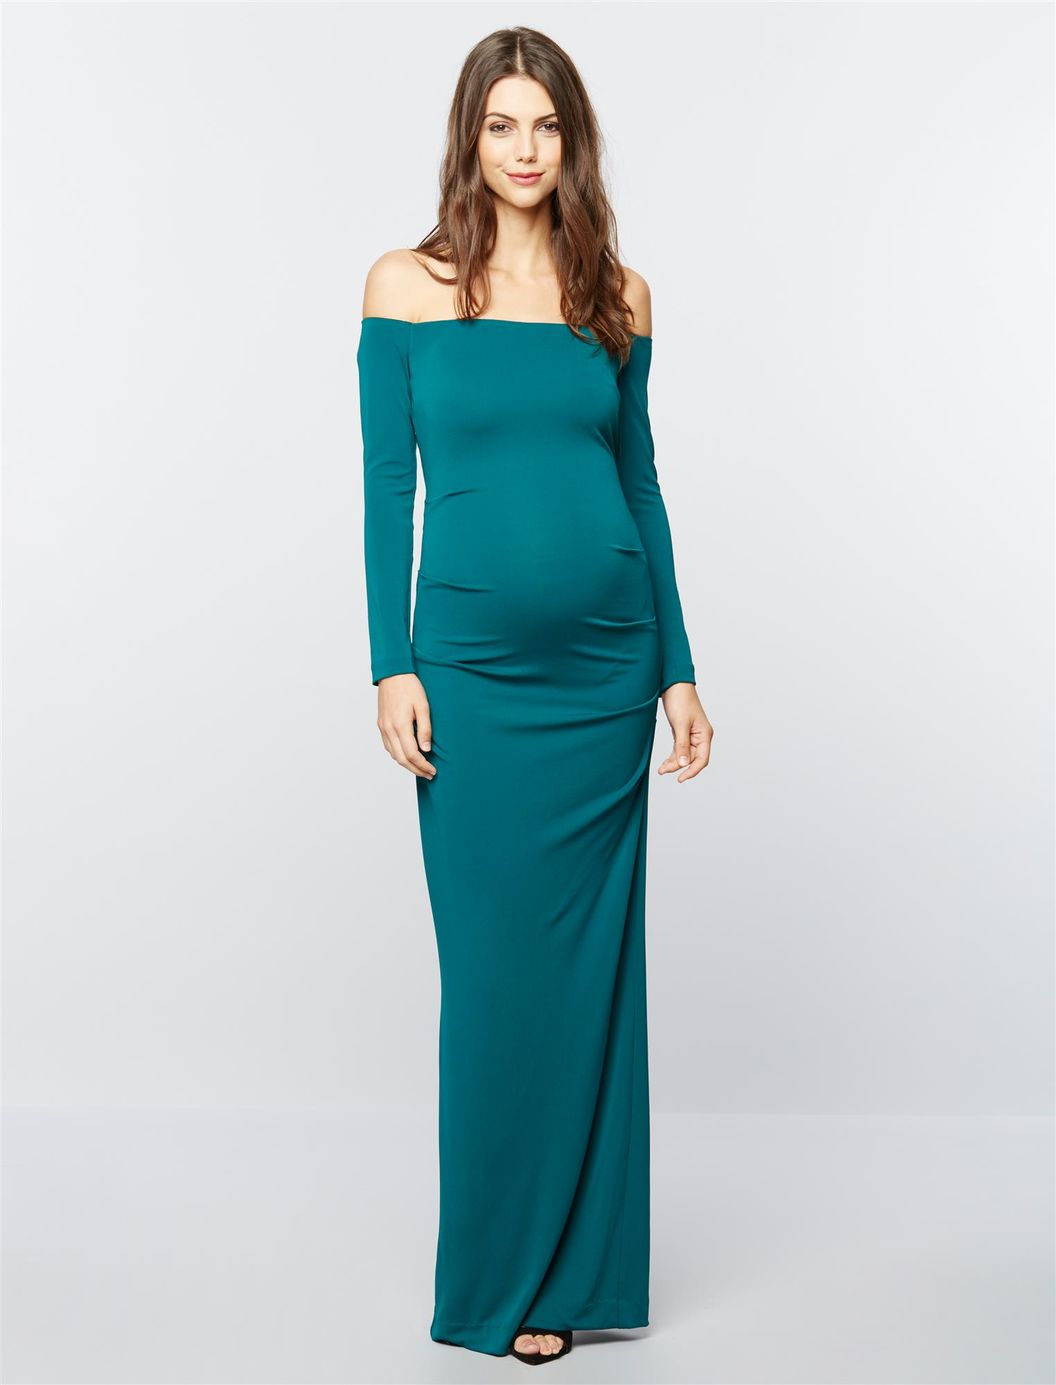 Cheap Maternity Dresses for Special Occasions – Plus Size Women Fashion